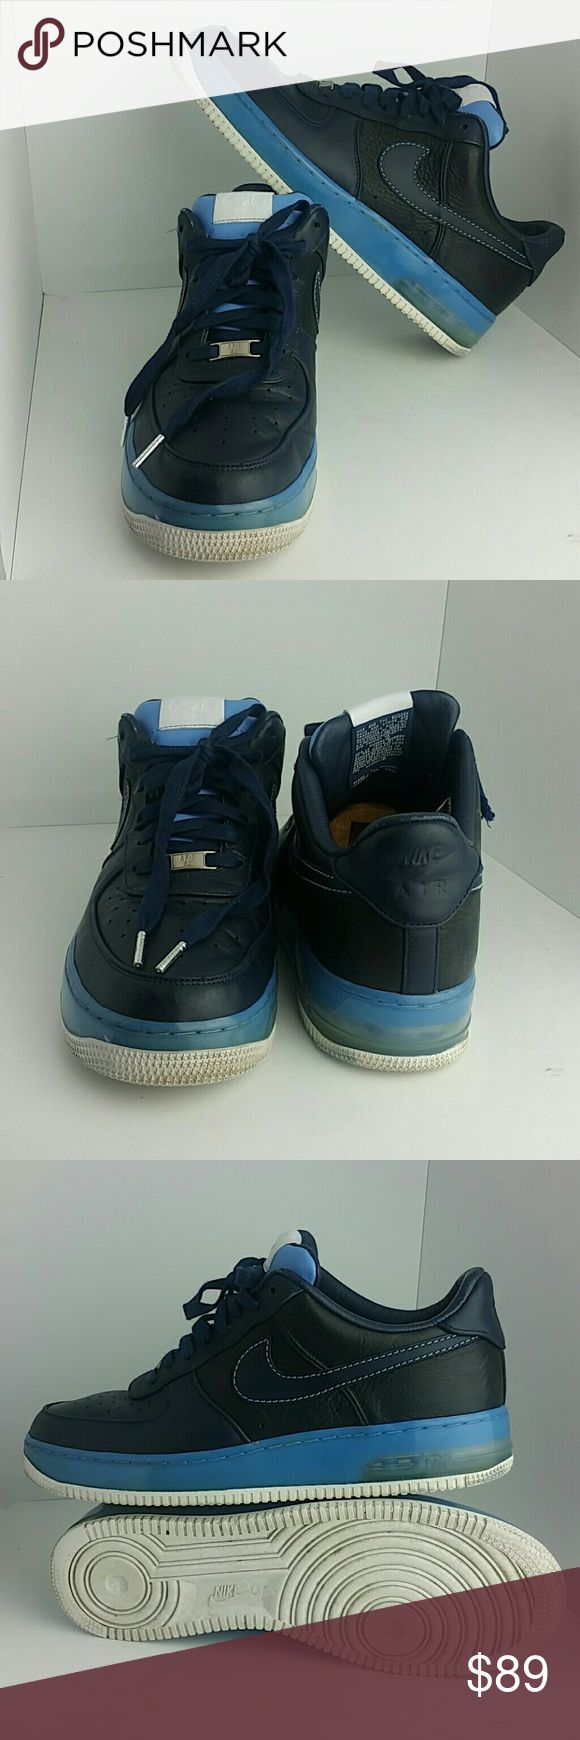 NIKE AIR FORCE 1 LOW SUPREME 07 MEN'S SHOES VERY CLEAN INSIDE-OUT   SKE # KM2 NIKE  Shoes Athletic Shoes